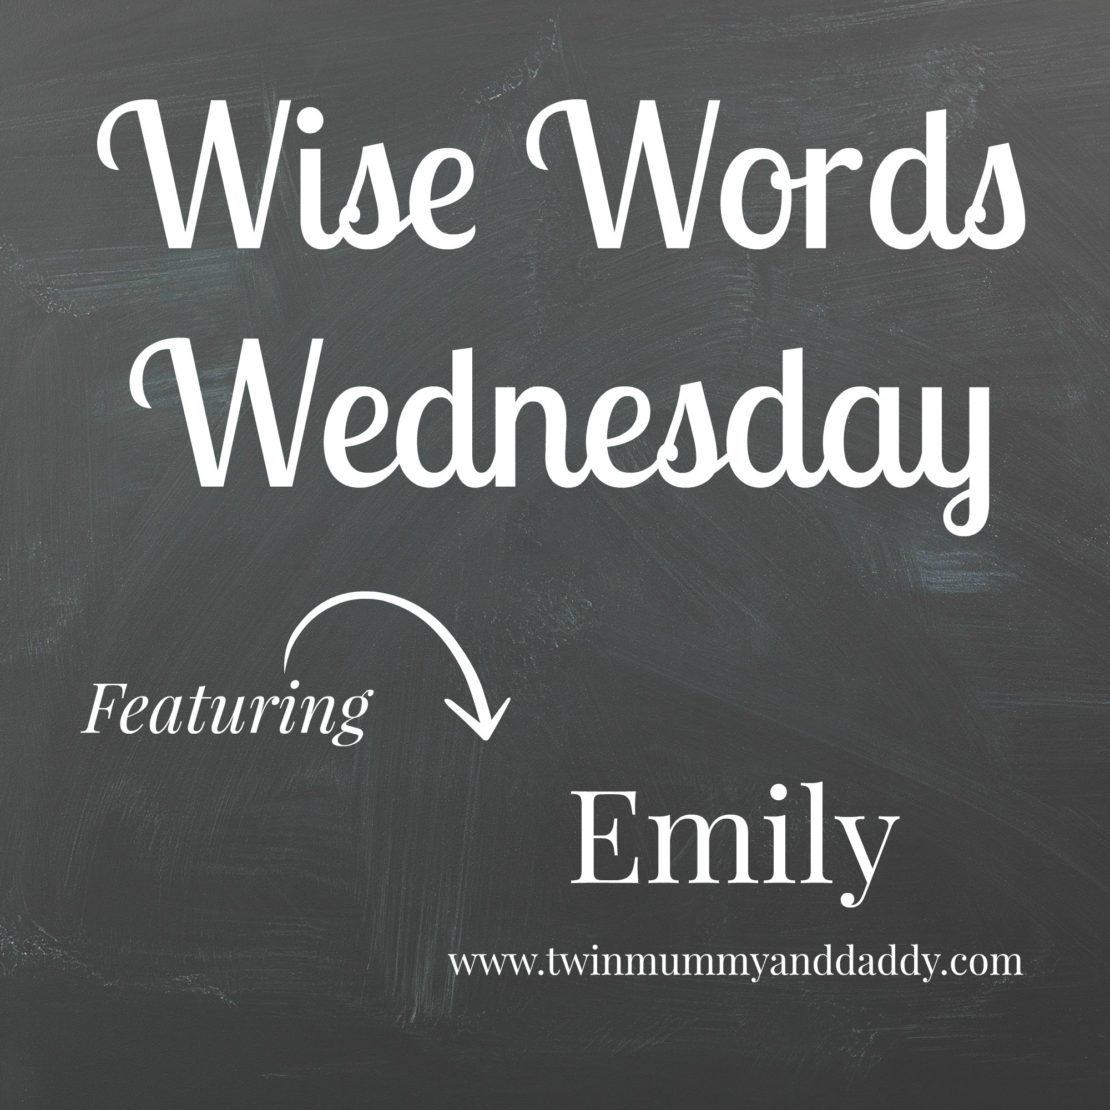 Wise Words Wednesday with Emily